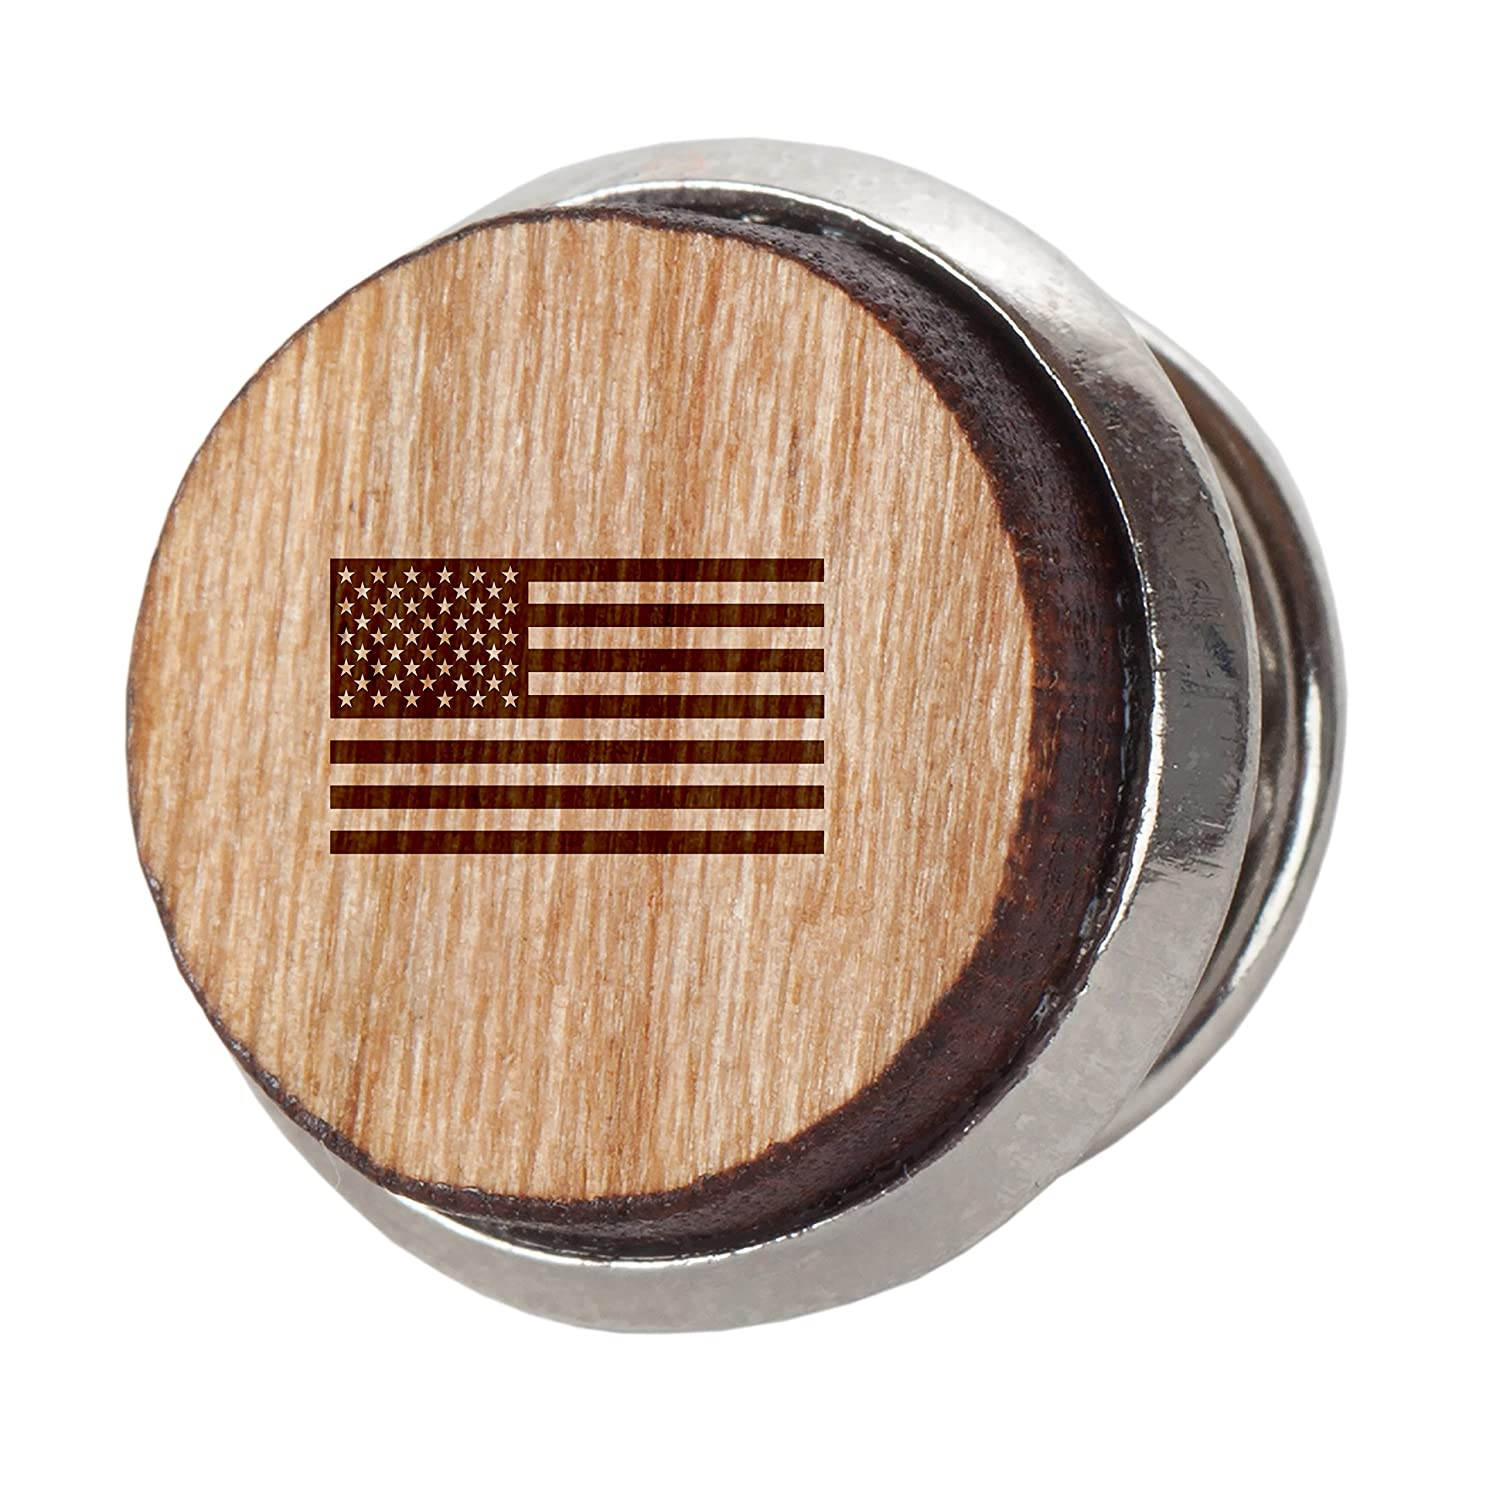 12Mm Simple Tie Clip with Laser Engraved Design Engraved Tie Tack Gift American Flag Stylish Cherry Wood Tie Tack